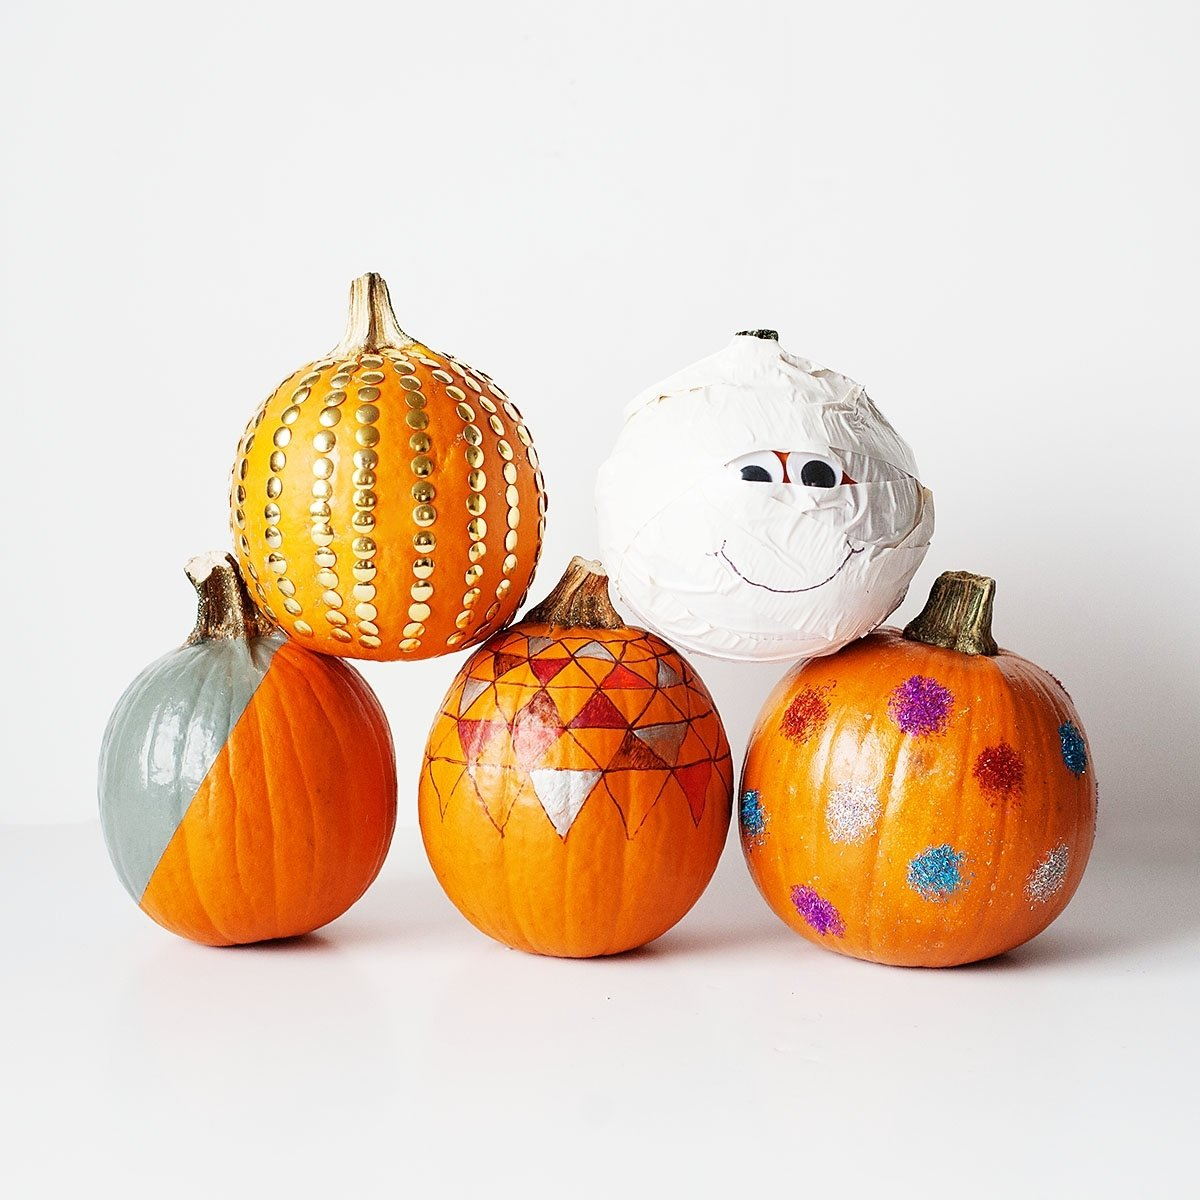 10 Most Recommended Non Carving Pumpkin Decorating Ideas 5 non carving pumpkin decorating ideas c2b7 kix cereal 2020